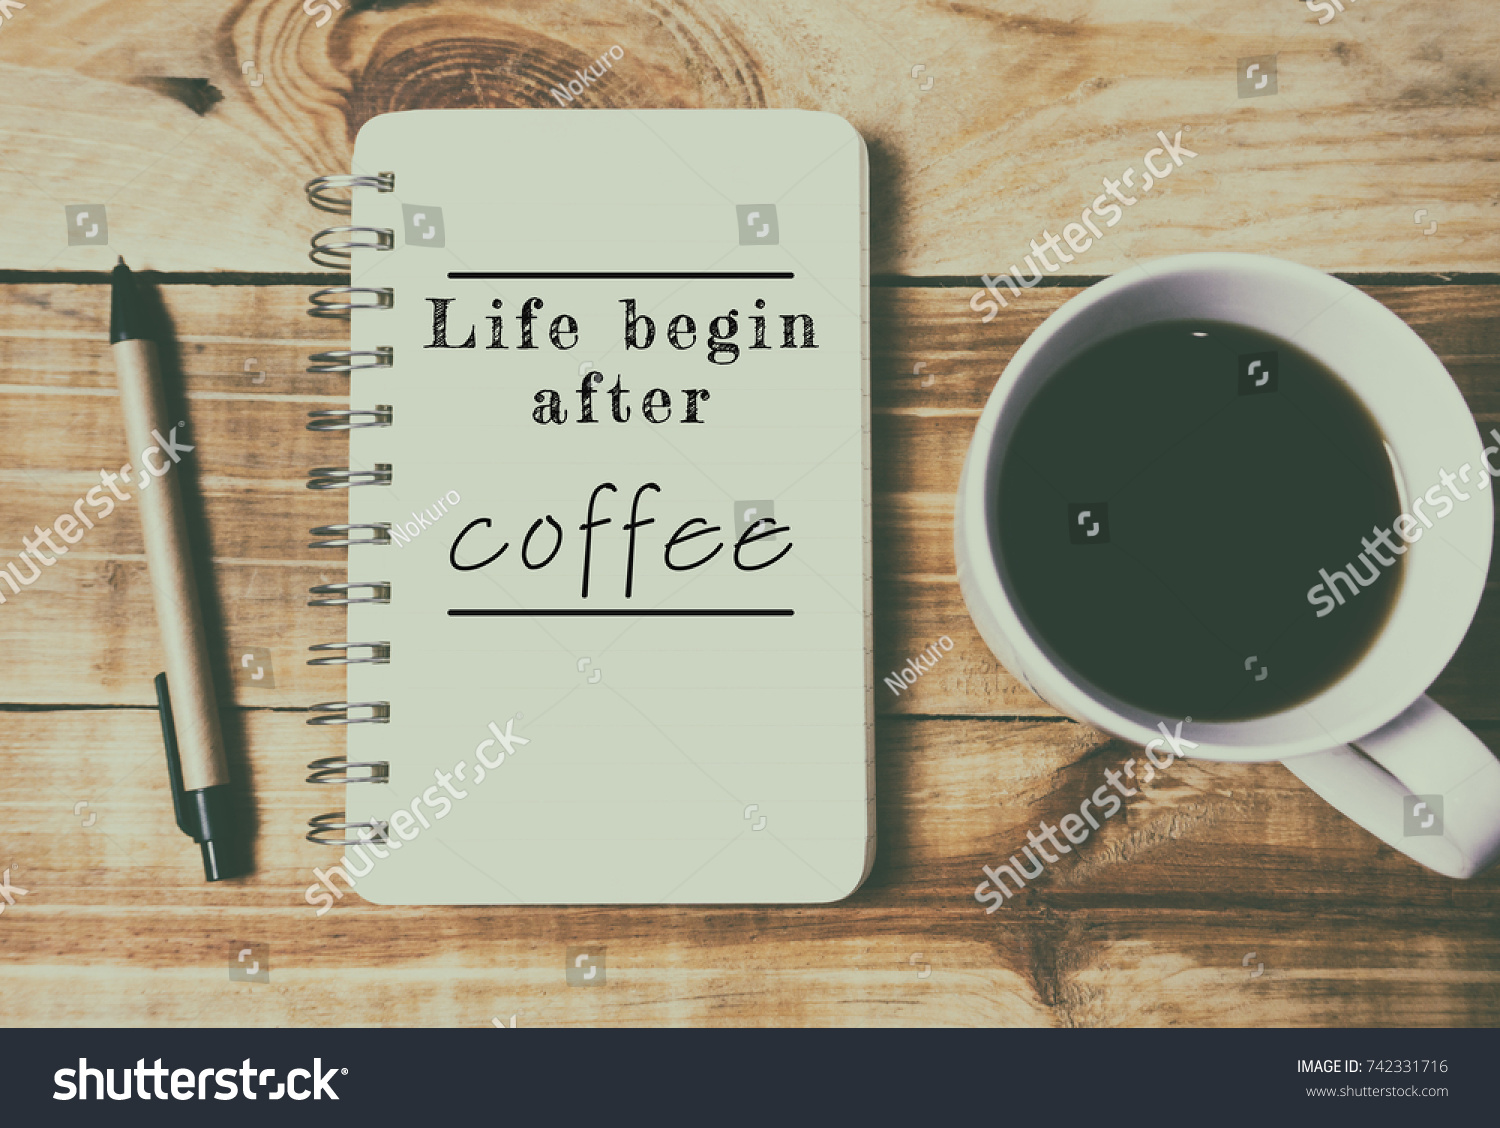 Wonderful Coffee Culture Inspirational Quotes   Life Begin After Coffee. Retro Style  Background.